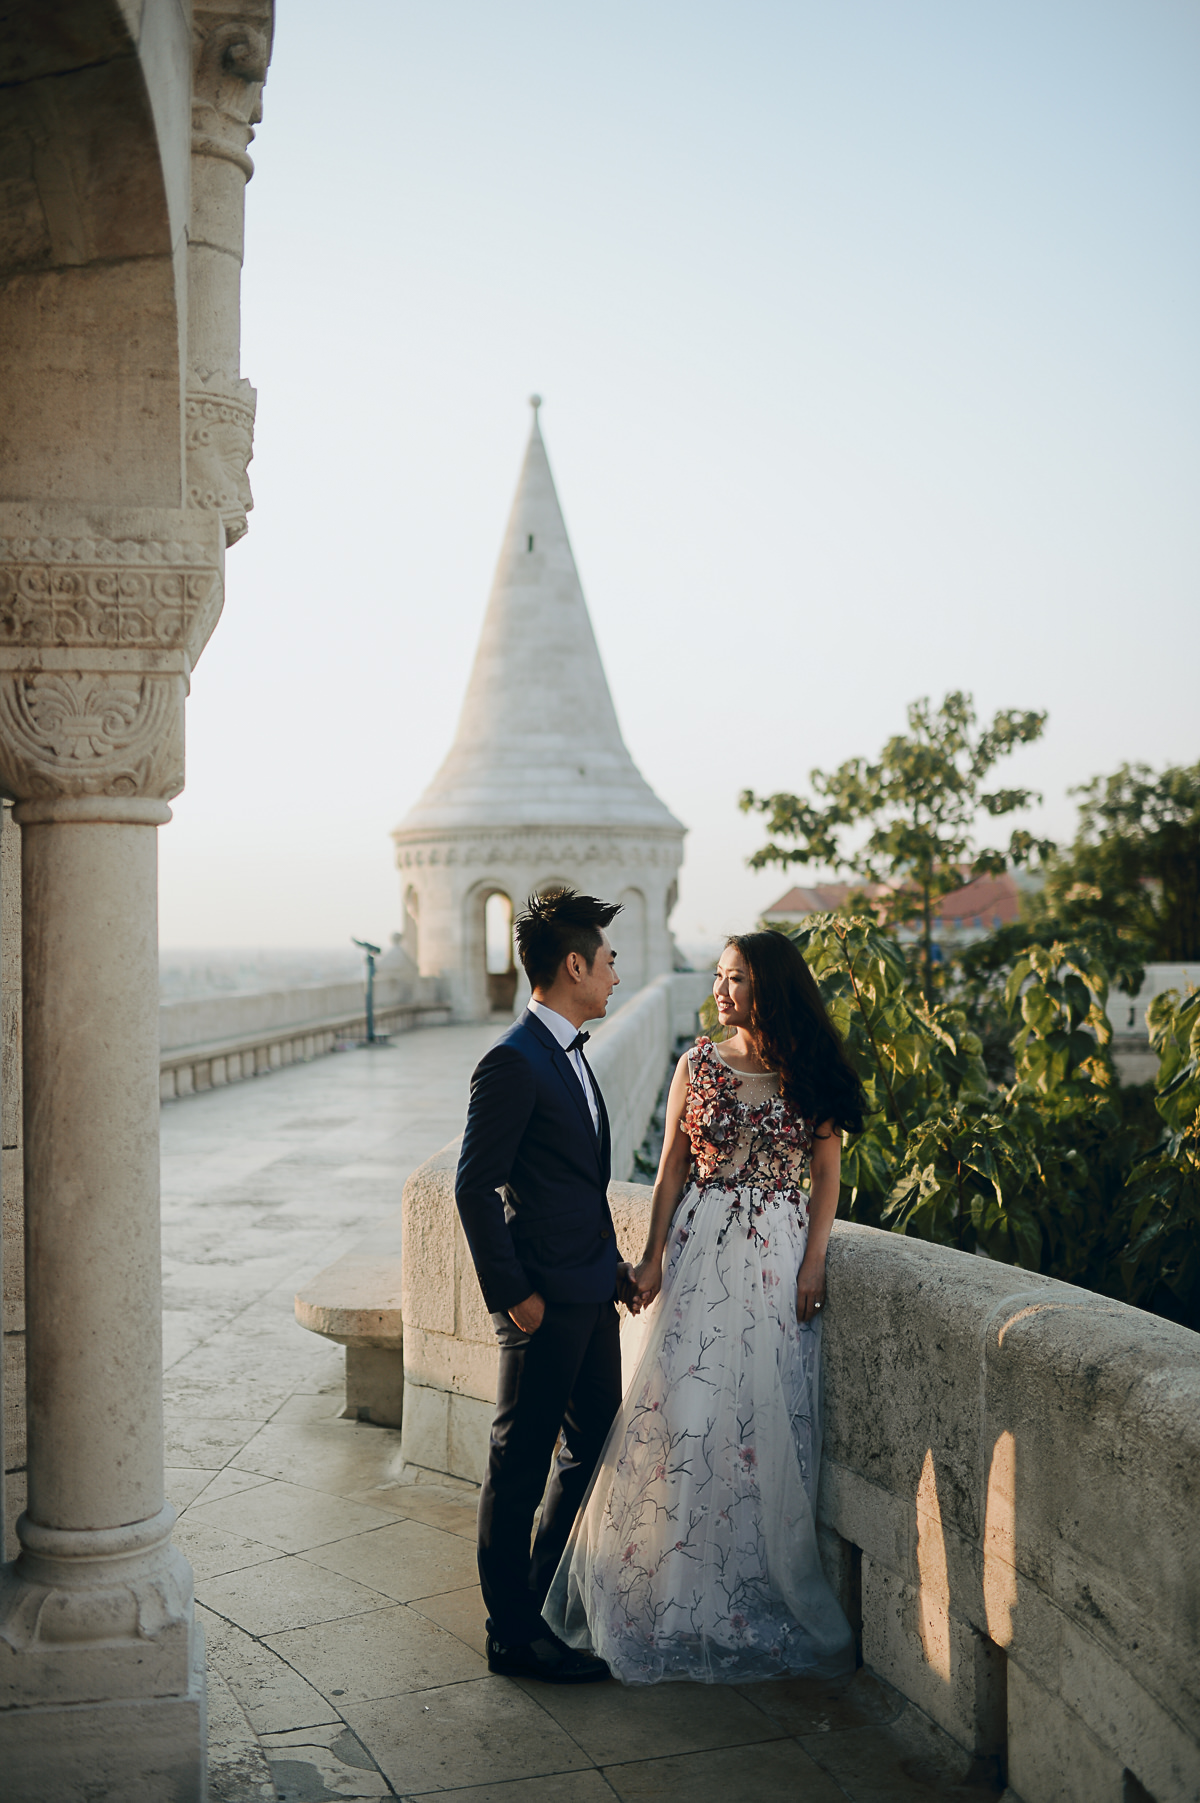 sun rise pre wedding photo session at Fishermans Bastion